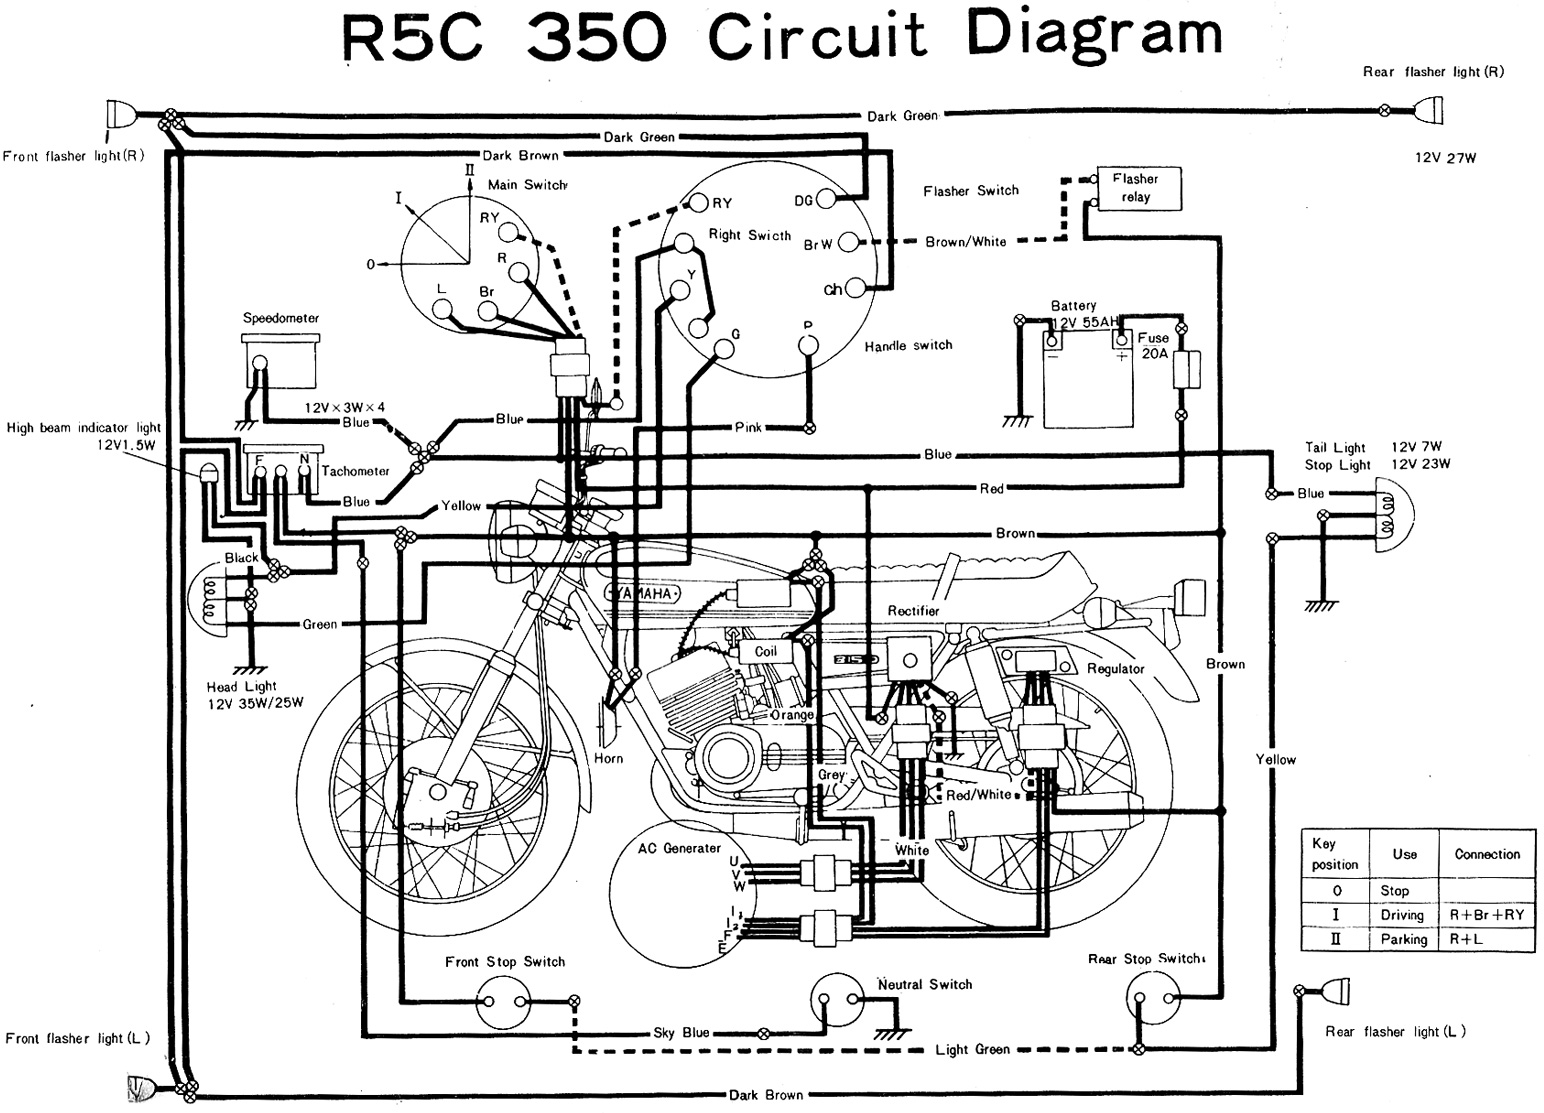 Yamaha Tw200 Engine Diagrams furthermore 1979 Xs1100 Wiring Diagram Free Picture Schematic likewise Yamaha Mio Cdi Wiring Diagram likewise Yamaha Xz 550 Wiring Diagram further Motorcycle Wiring Yamaha Xs1100. on yamaha xs1100 wiring diagram